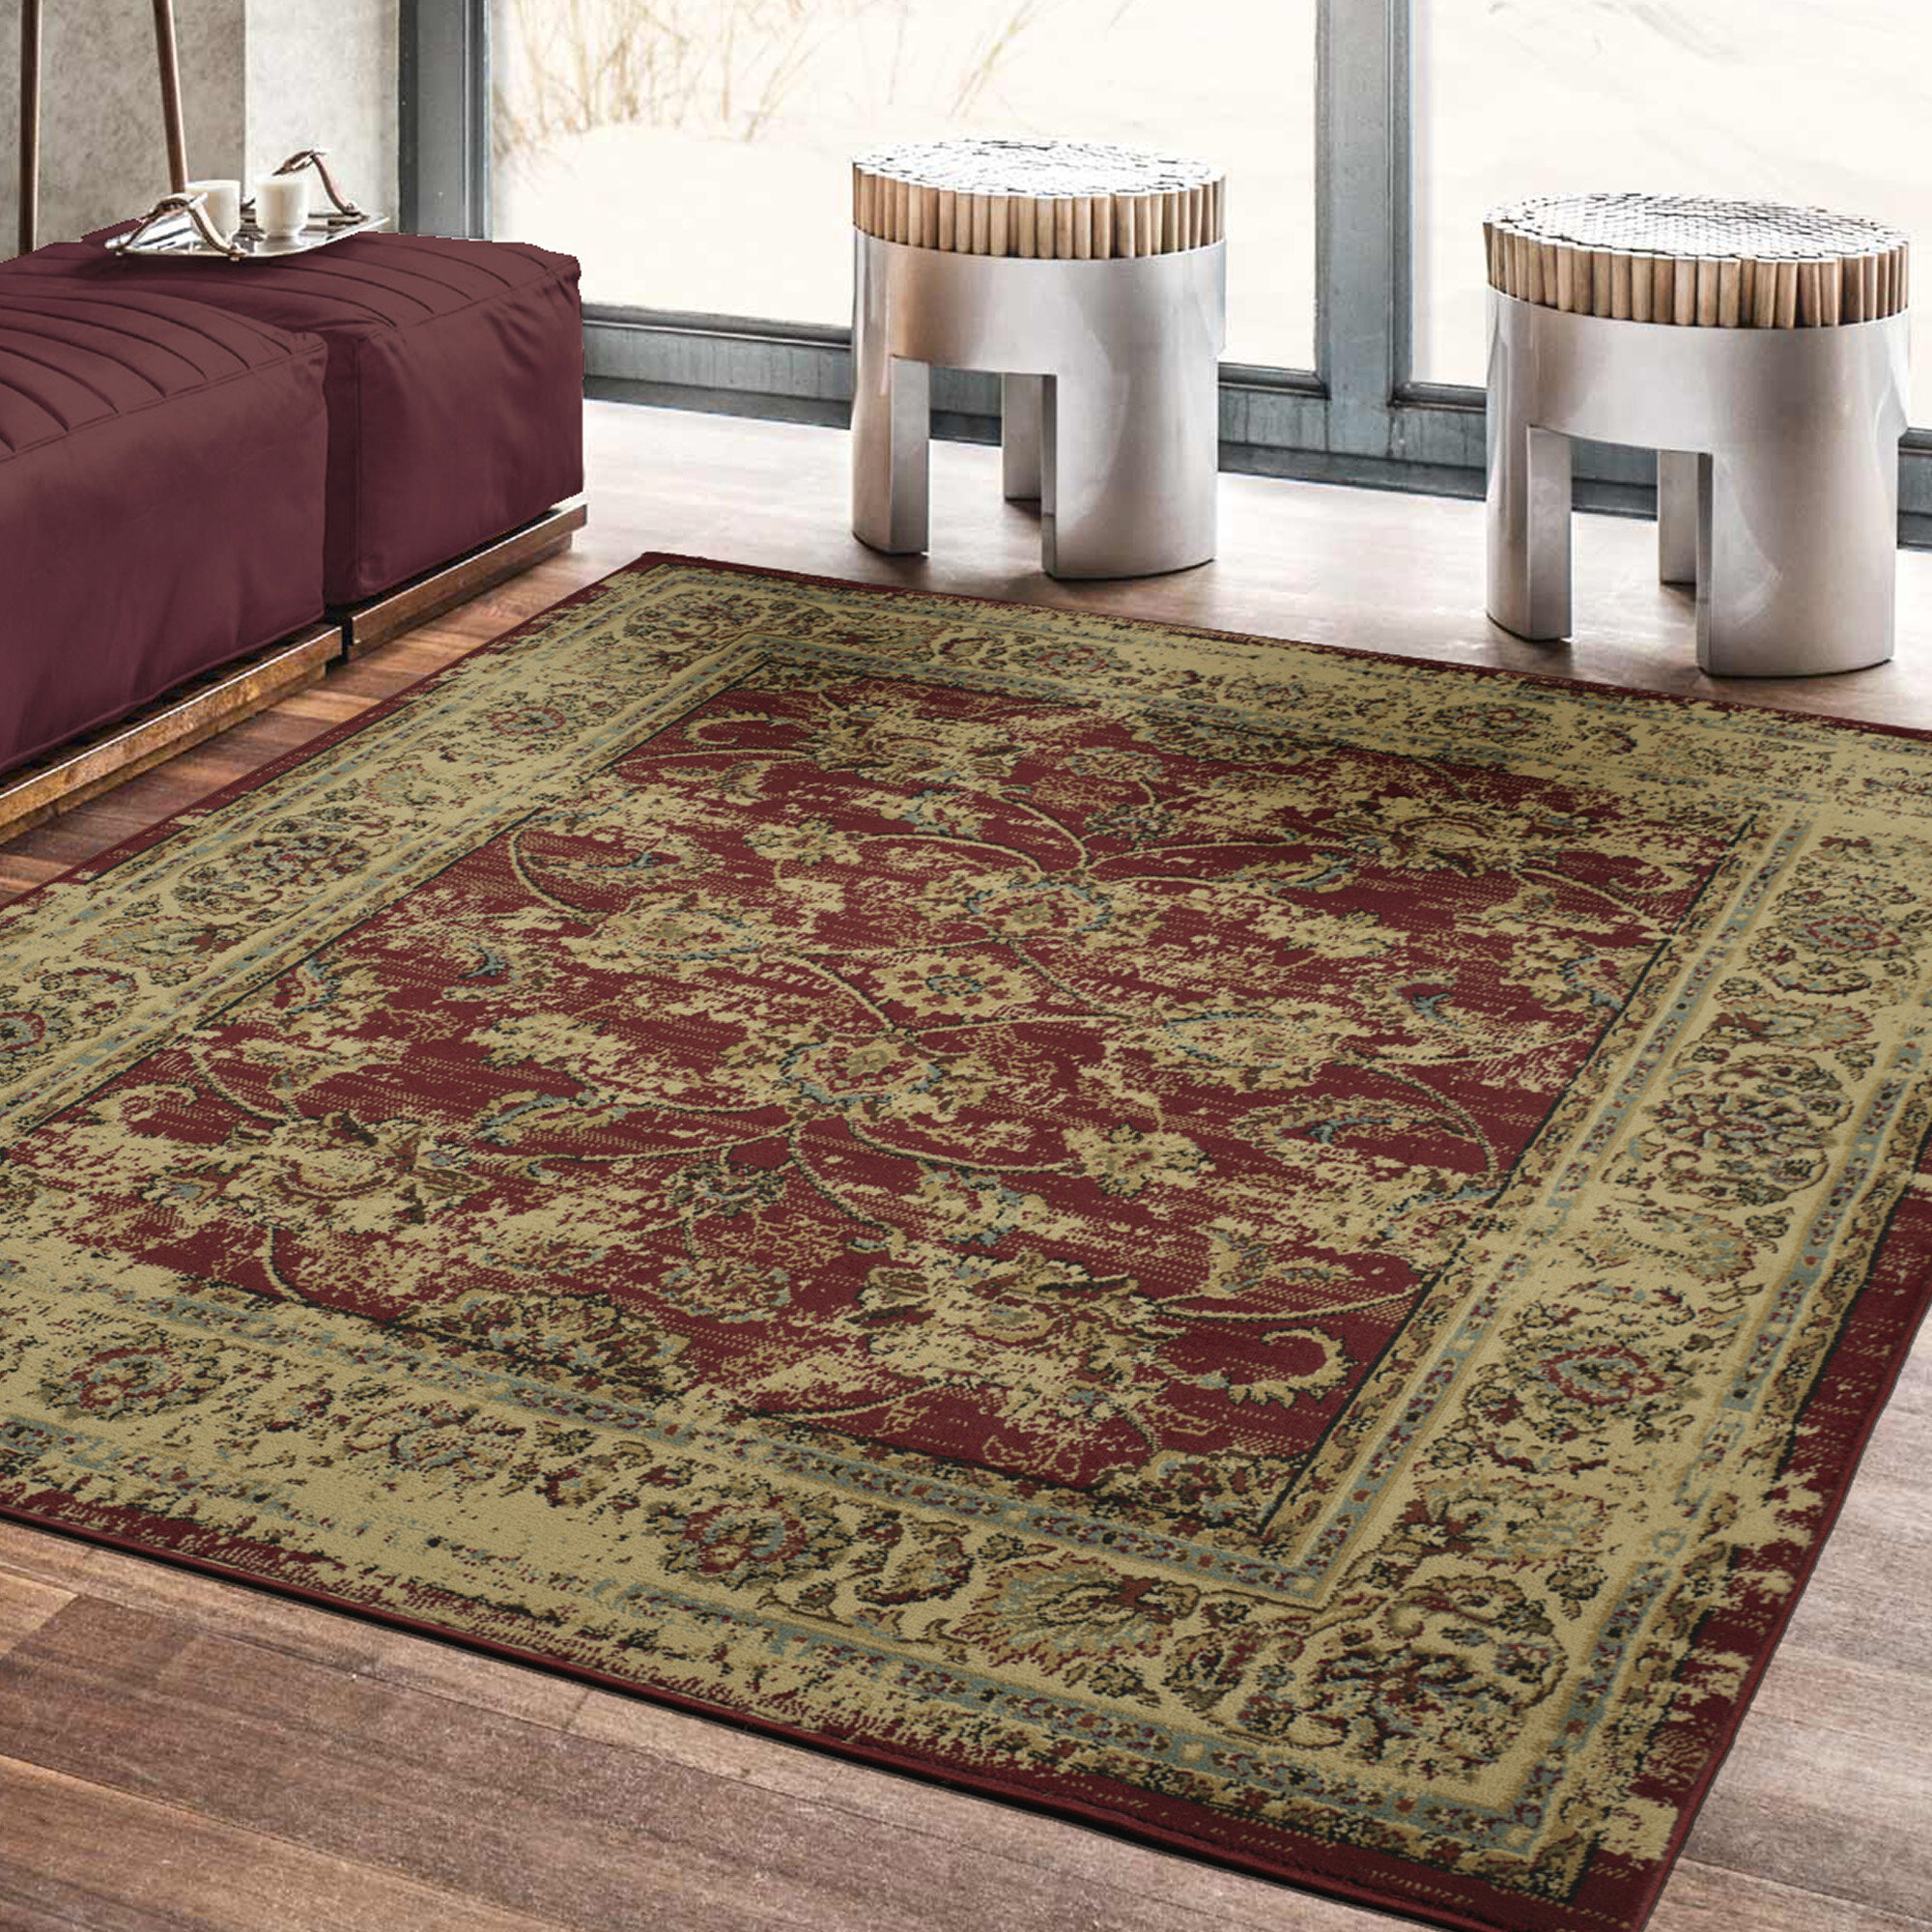 Charlton Home Lamberth Distressed Floral Redyellow Area Rug Ebay